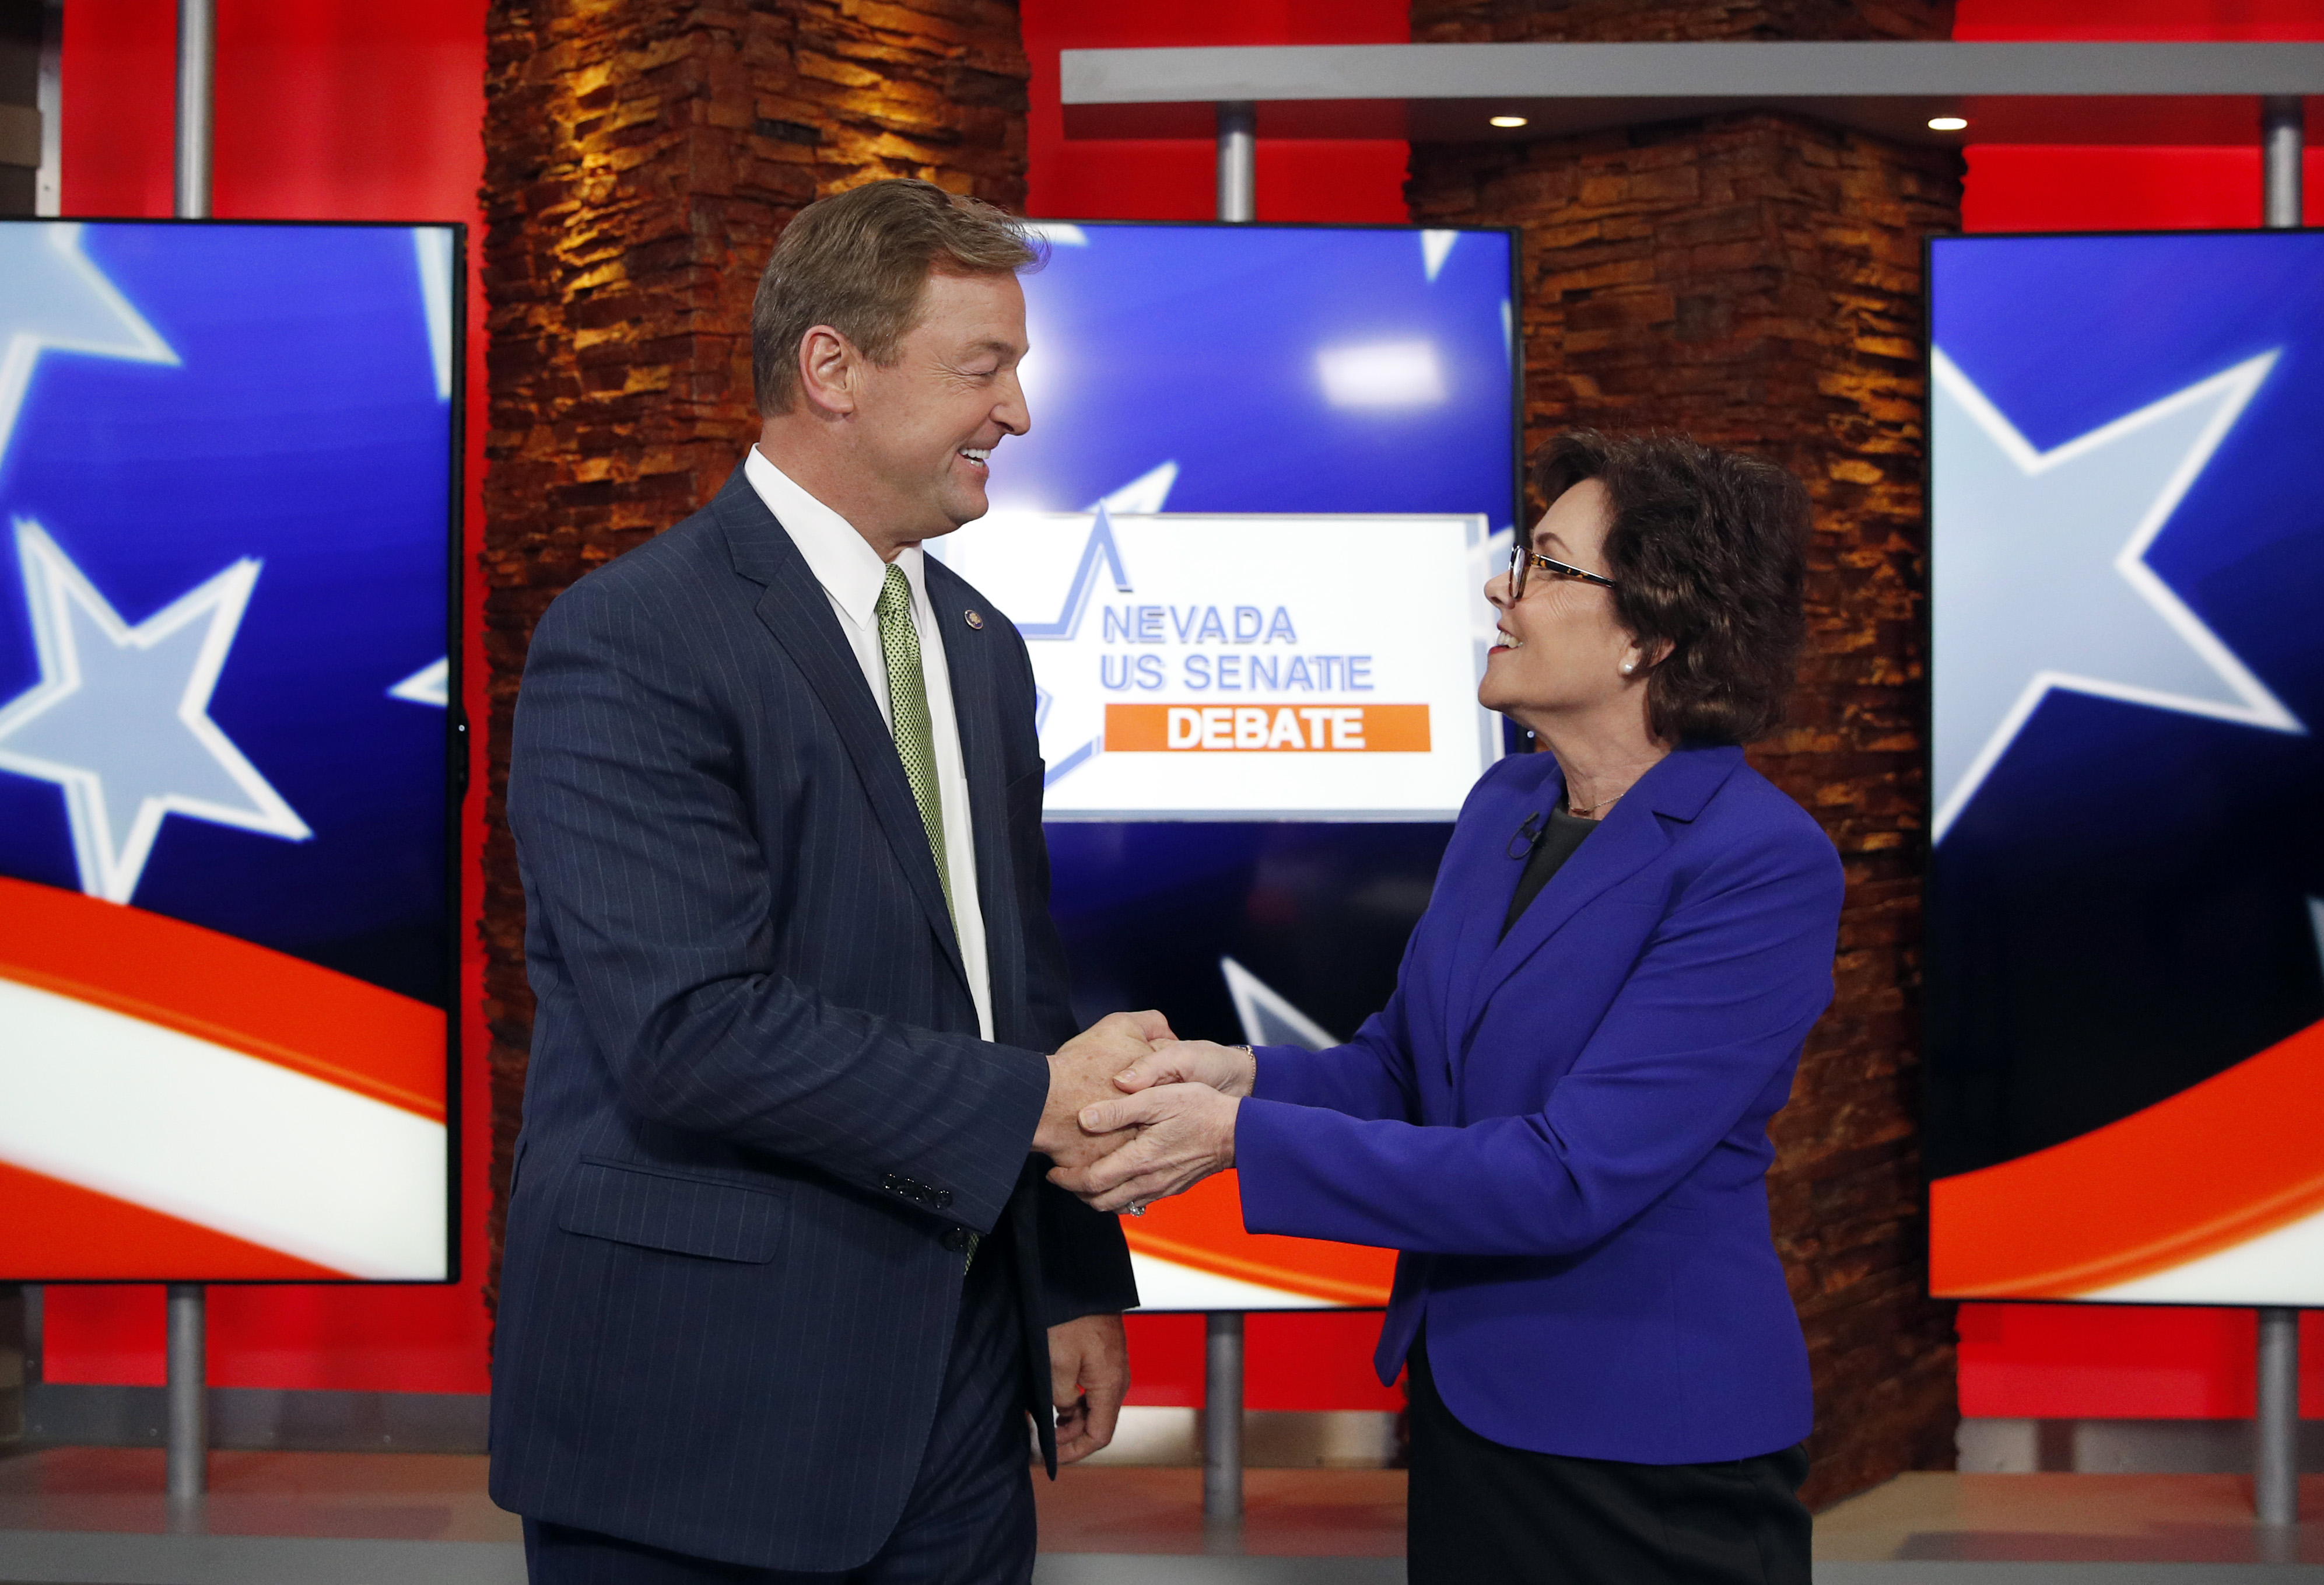 U.S. Sen. Dean Heller (R-NV) (L) and U.S. Rep Jacky Rosen (D-NV) shake hands before their debate at KLAS Channel 8 Studios on October 19, 2018 in Las Vegas, Nevada. John Locher-Pool/Getty Images